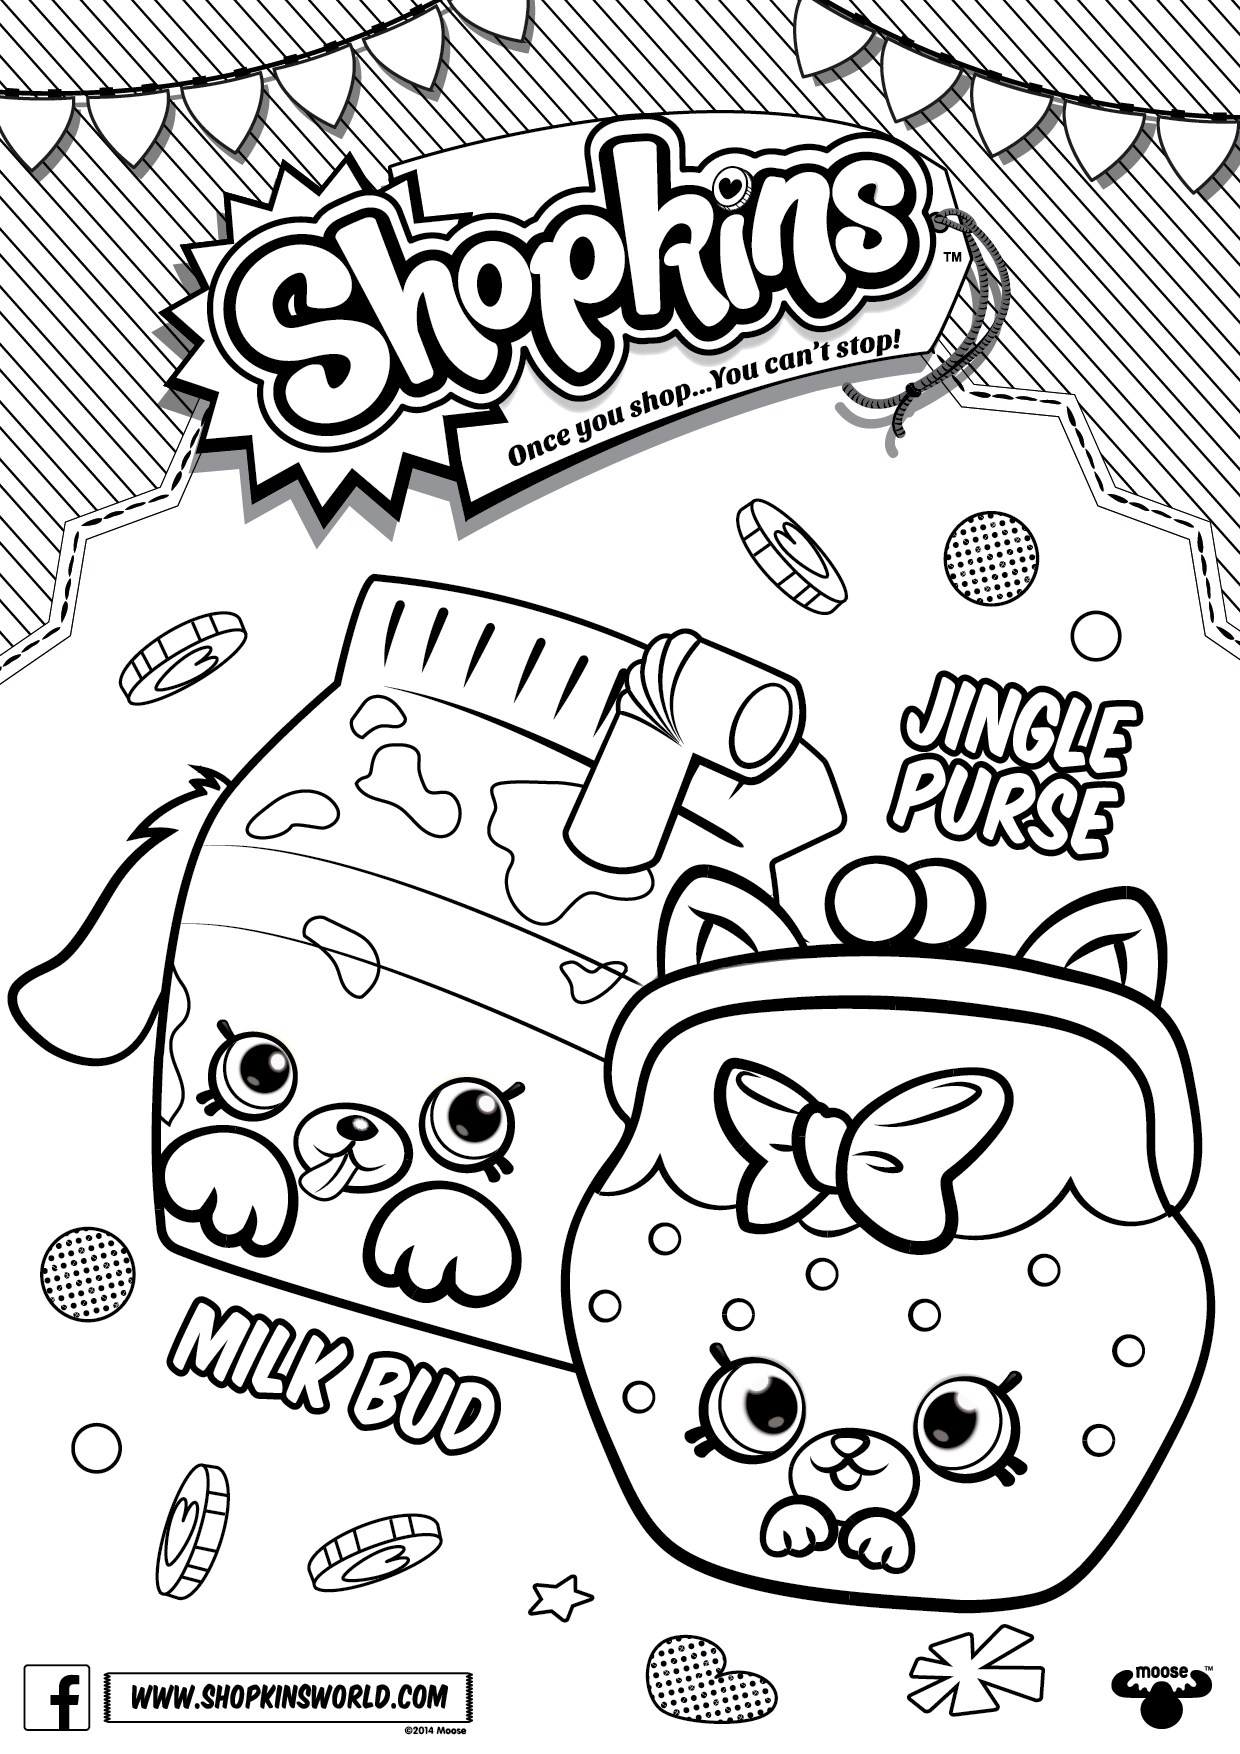 1240x1754 Shopkins Coloring Pages Season Petkins Jingle Purse Milk Bud